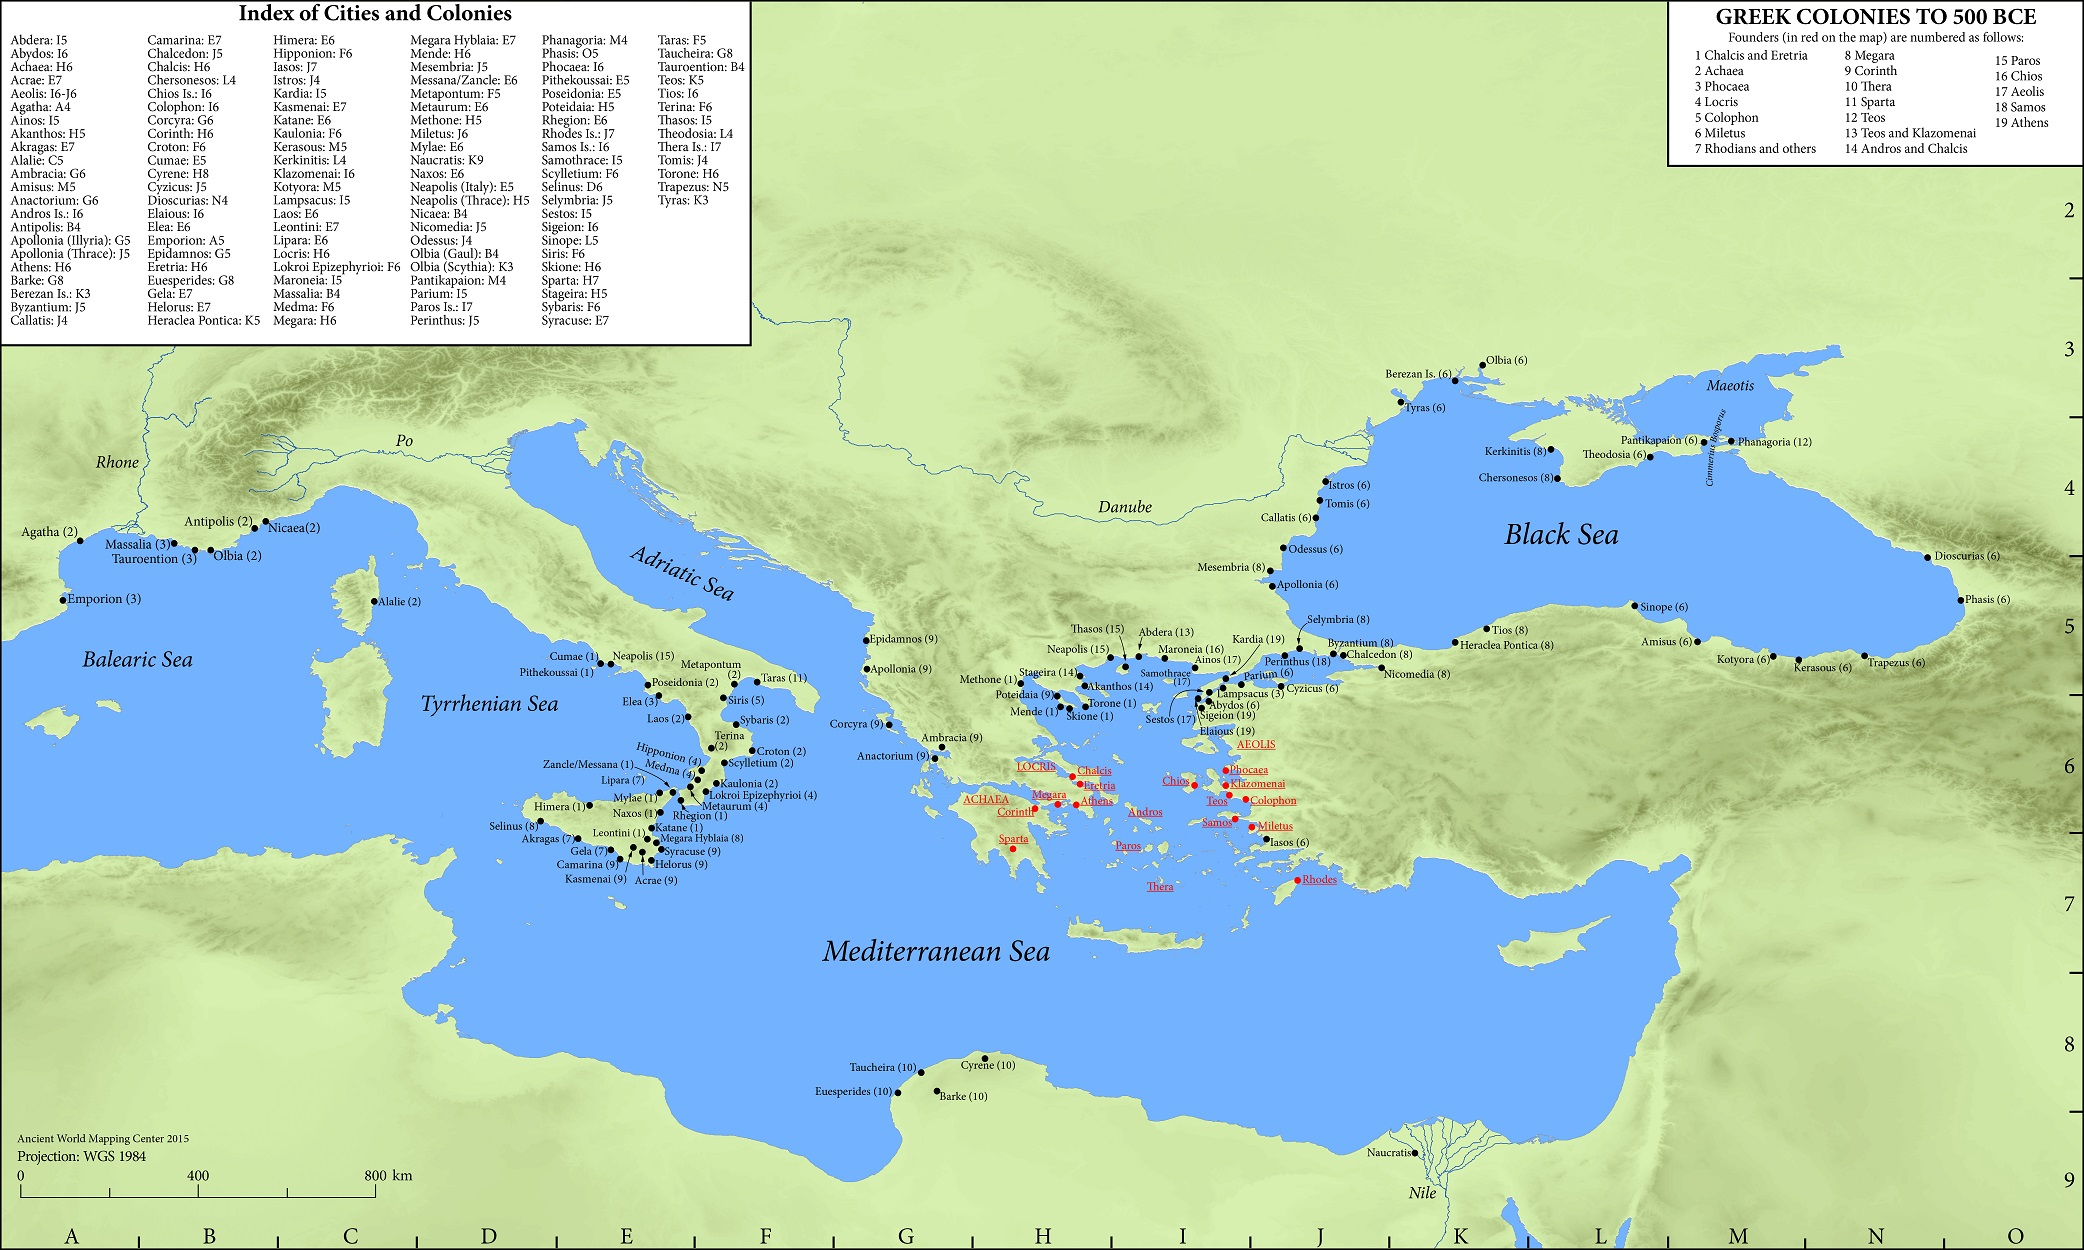 Elegant Greek Colonies To 500 BCE: